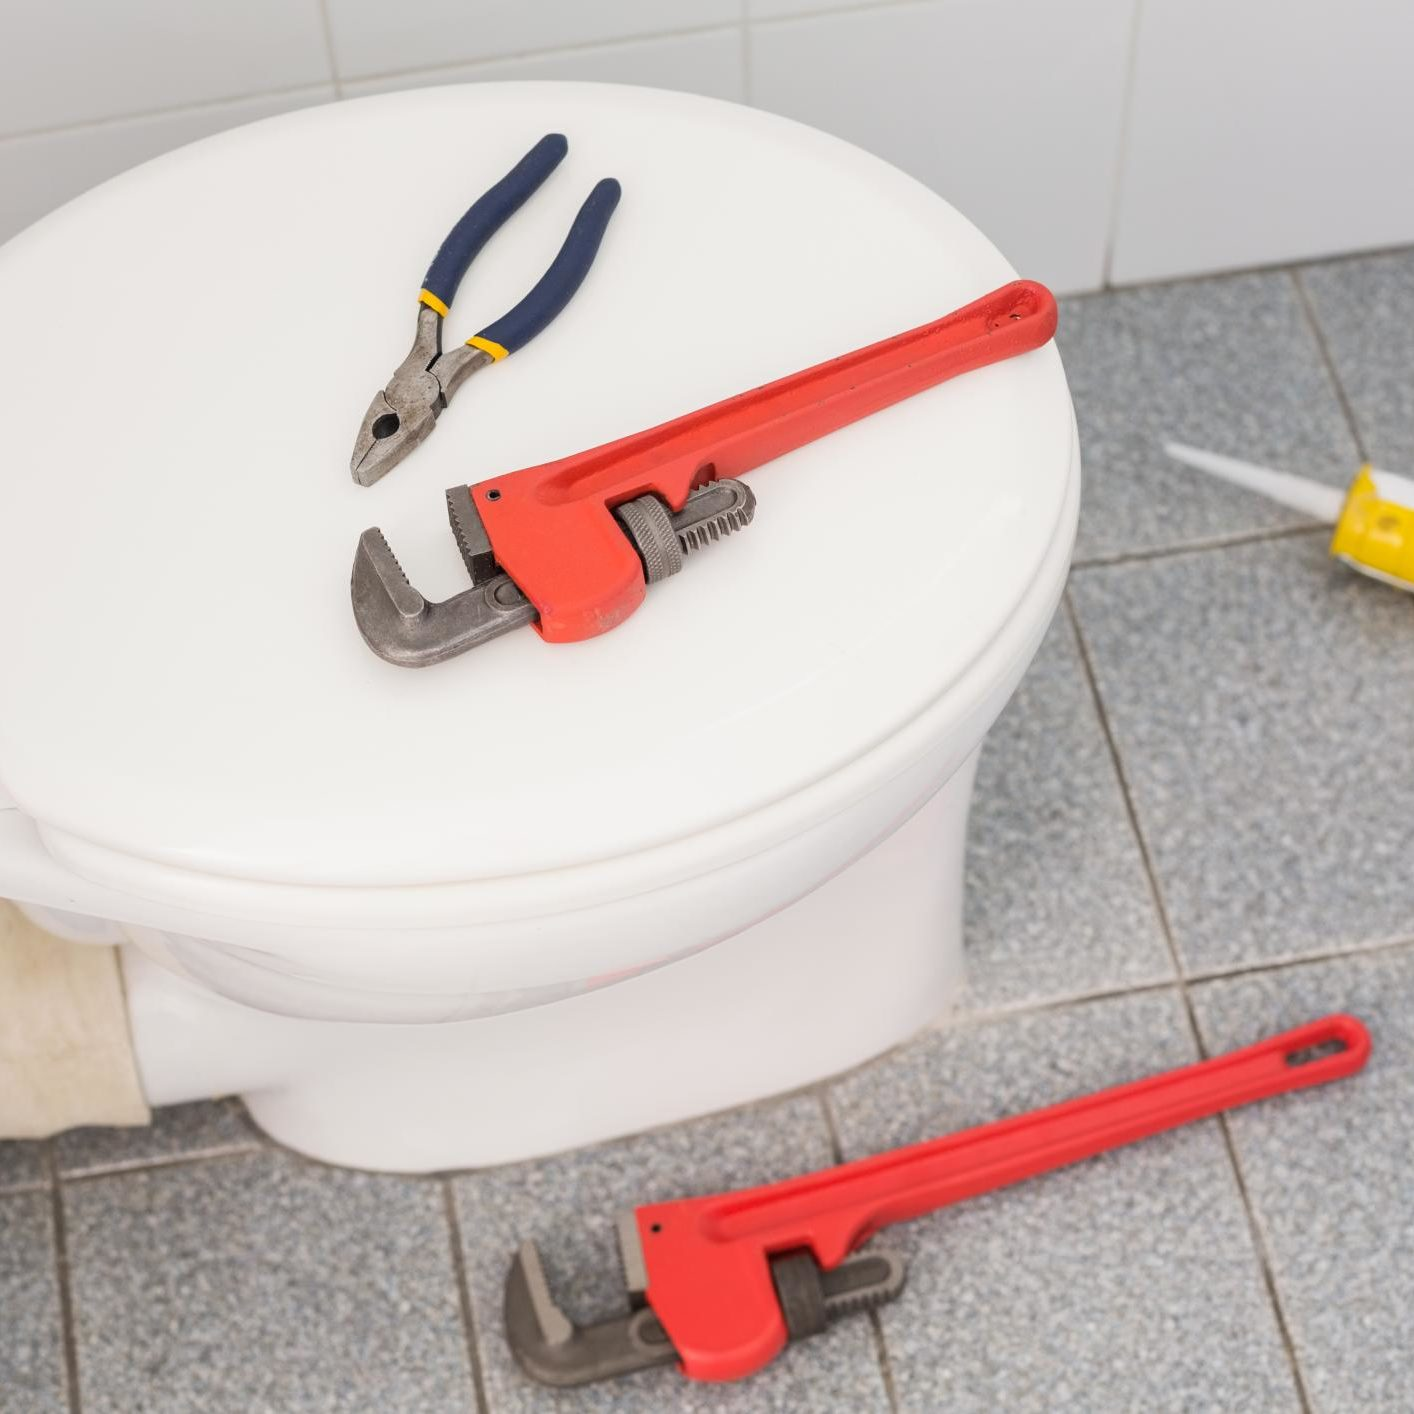 SouthEast Edmonton Plumbers - Home Page - Toilet repair